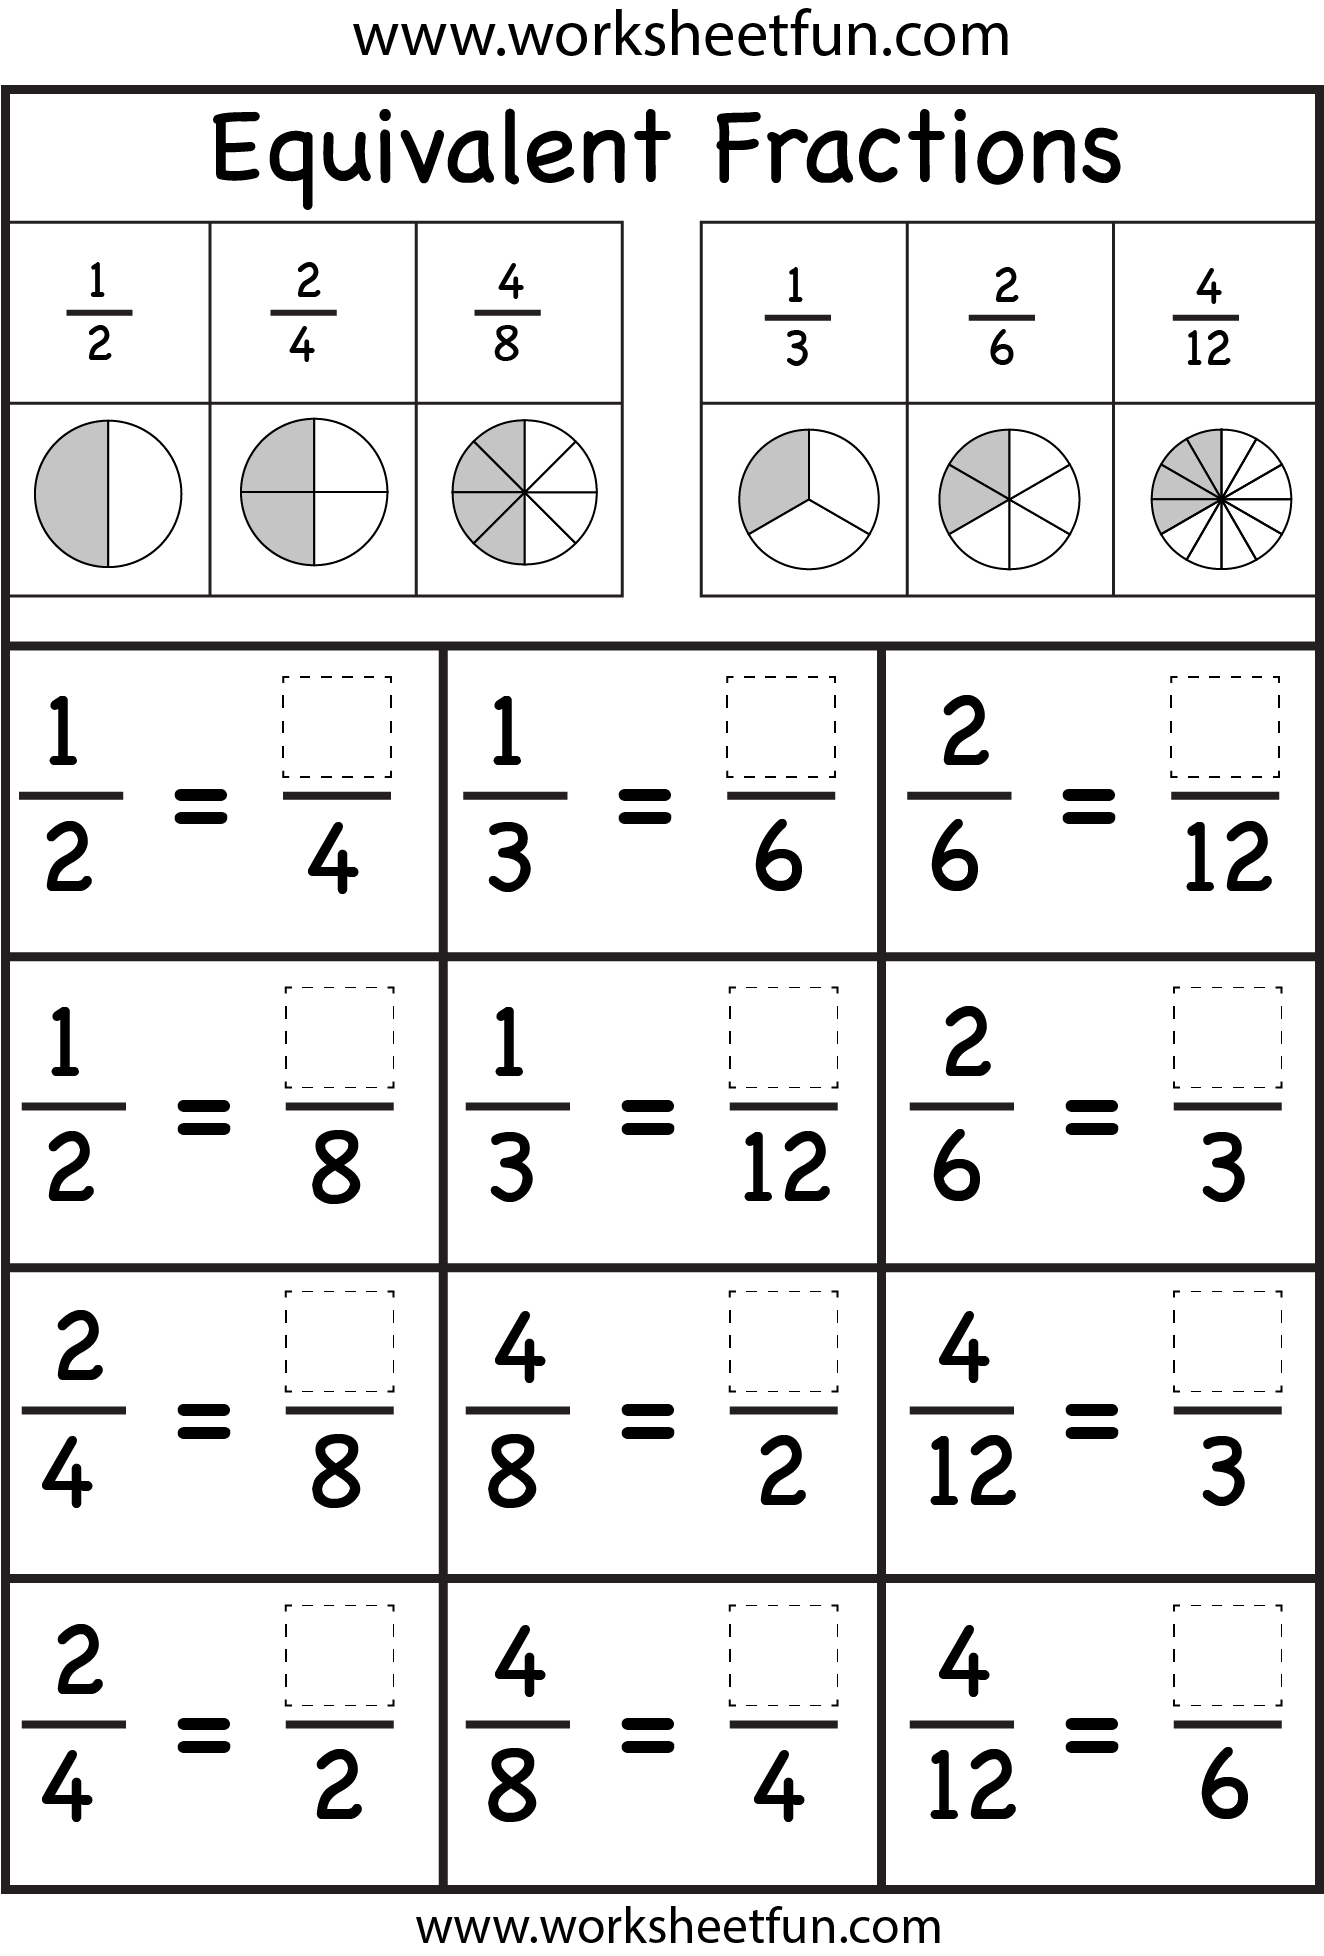 Worksheets Equivalent Fractions Free Worksheets equivalent fractions ashley walters elizabeth elizabeth